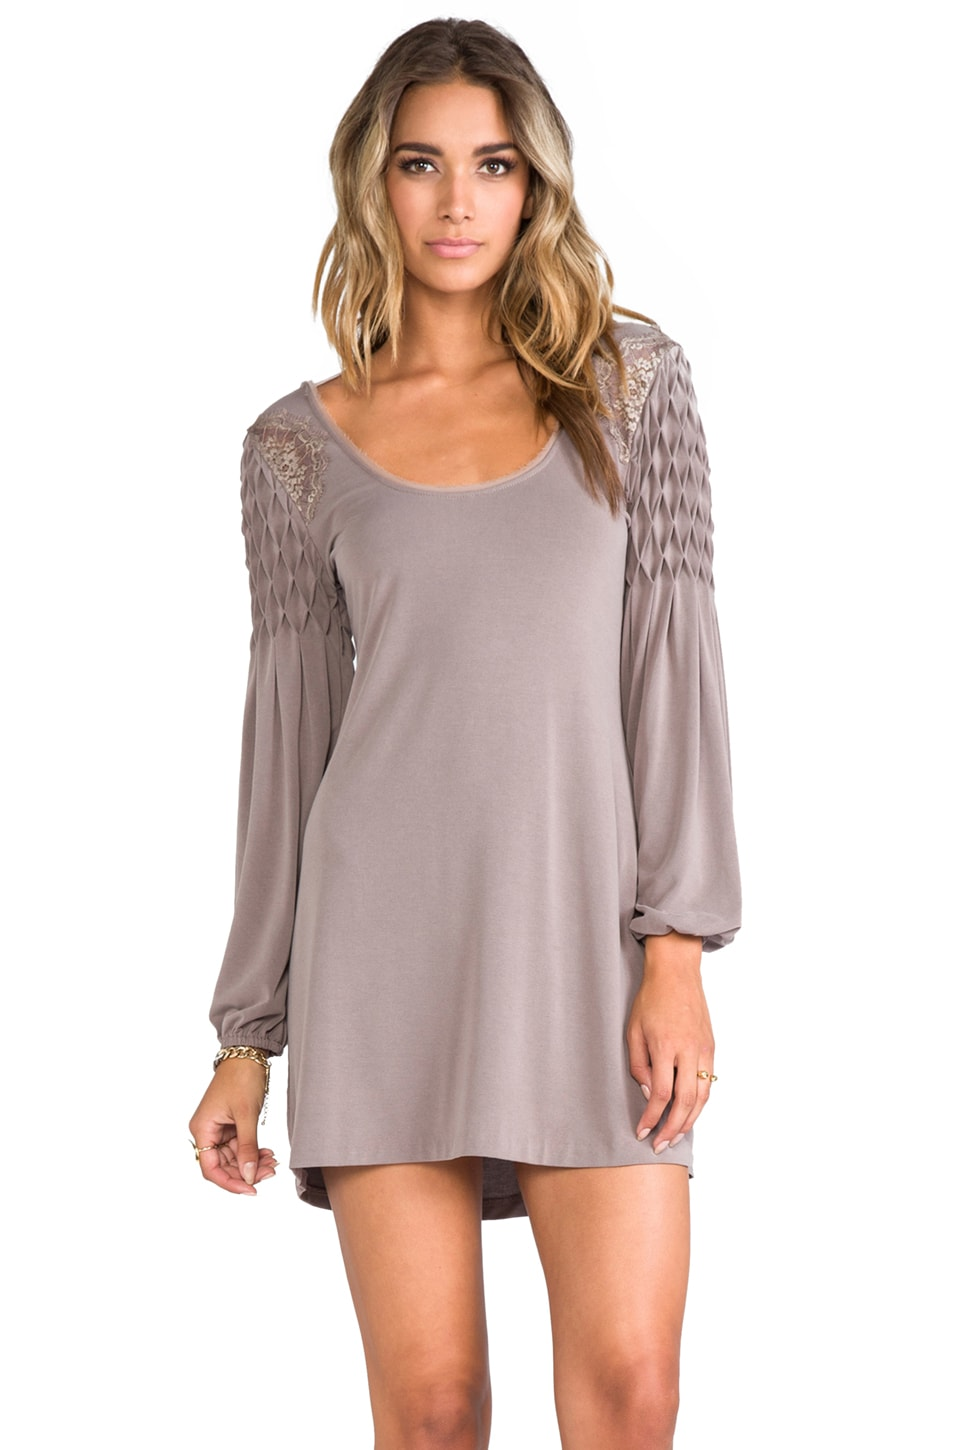 Free People Jessies Mini Dress in Dark Taupe